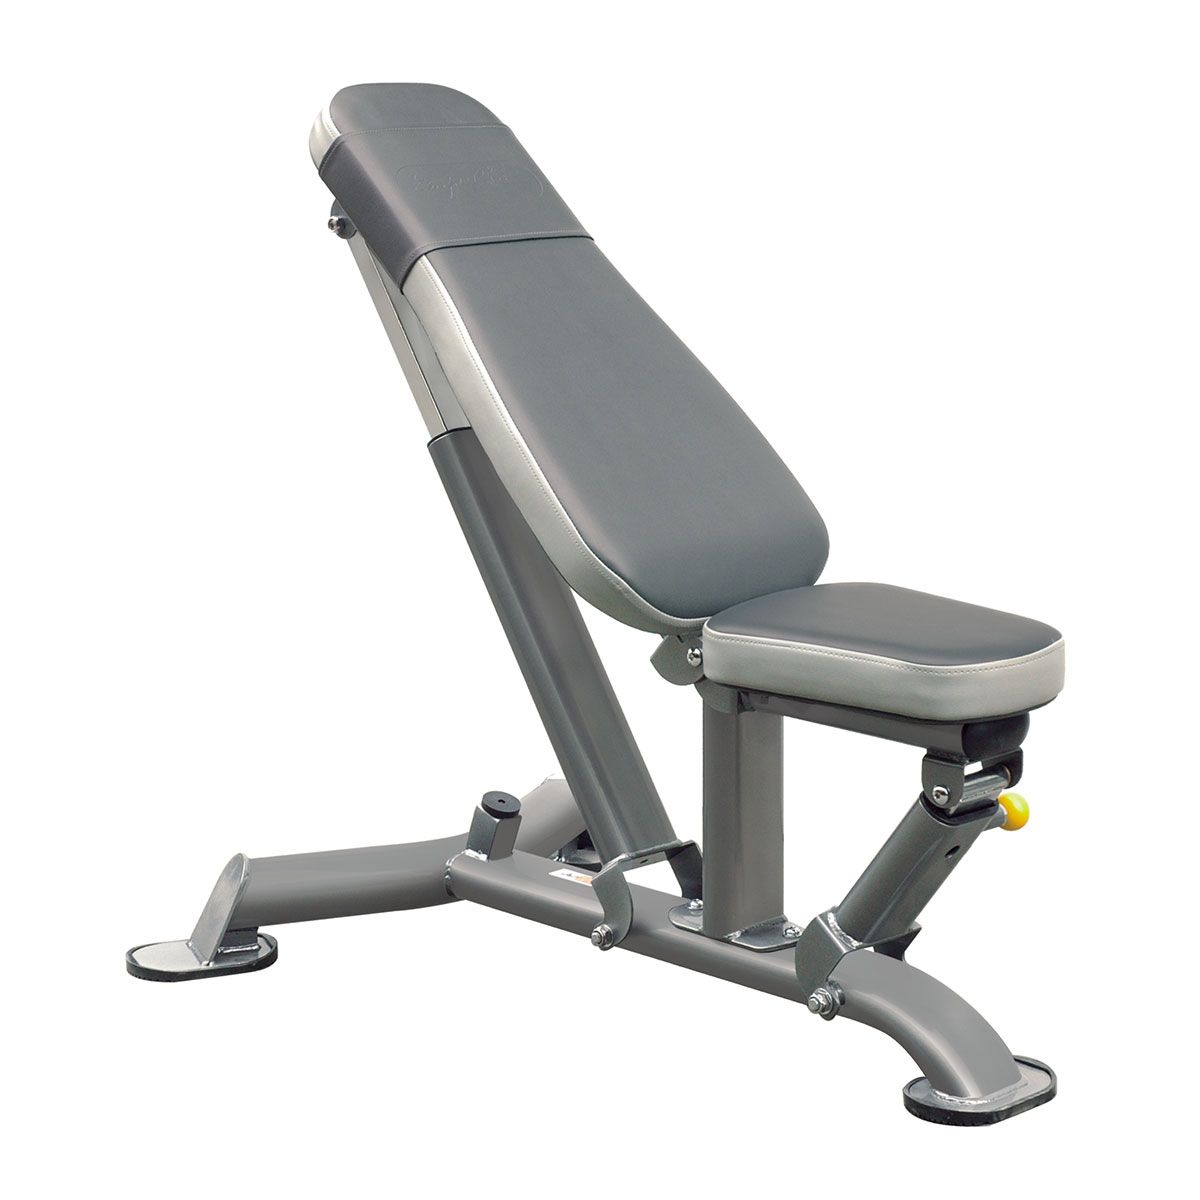 Mult Adjustable bench Impulse Wellness